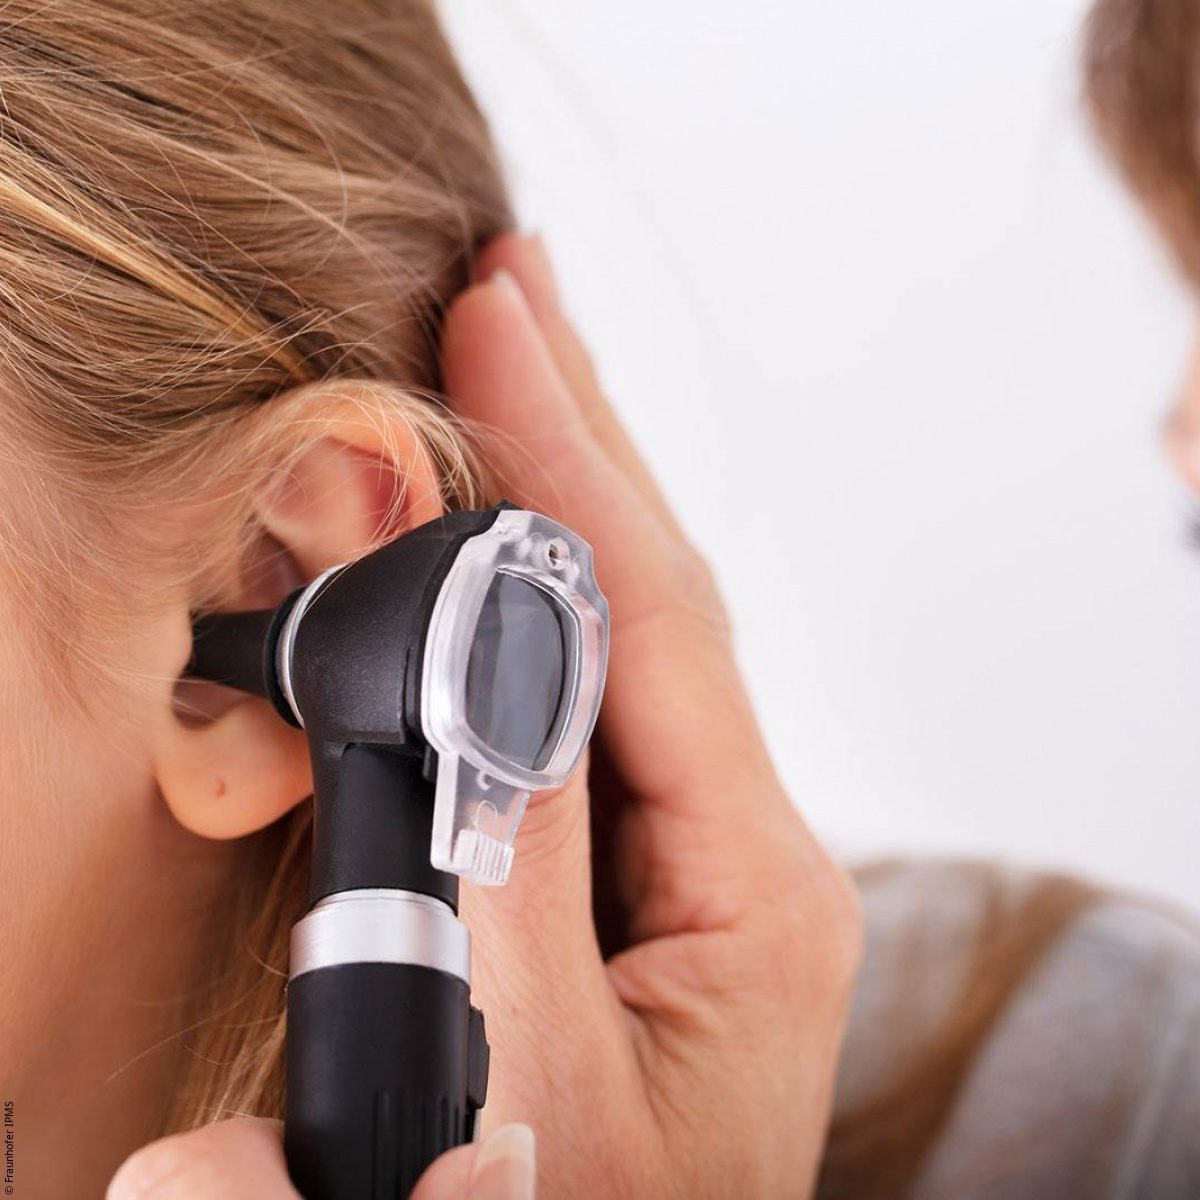 Sensors: diagnosing middle-ear infection with ultrasound